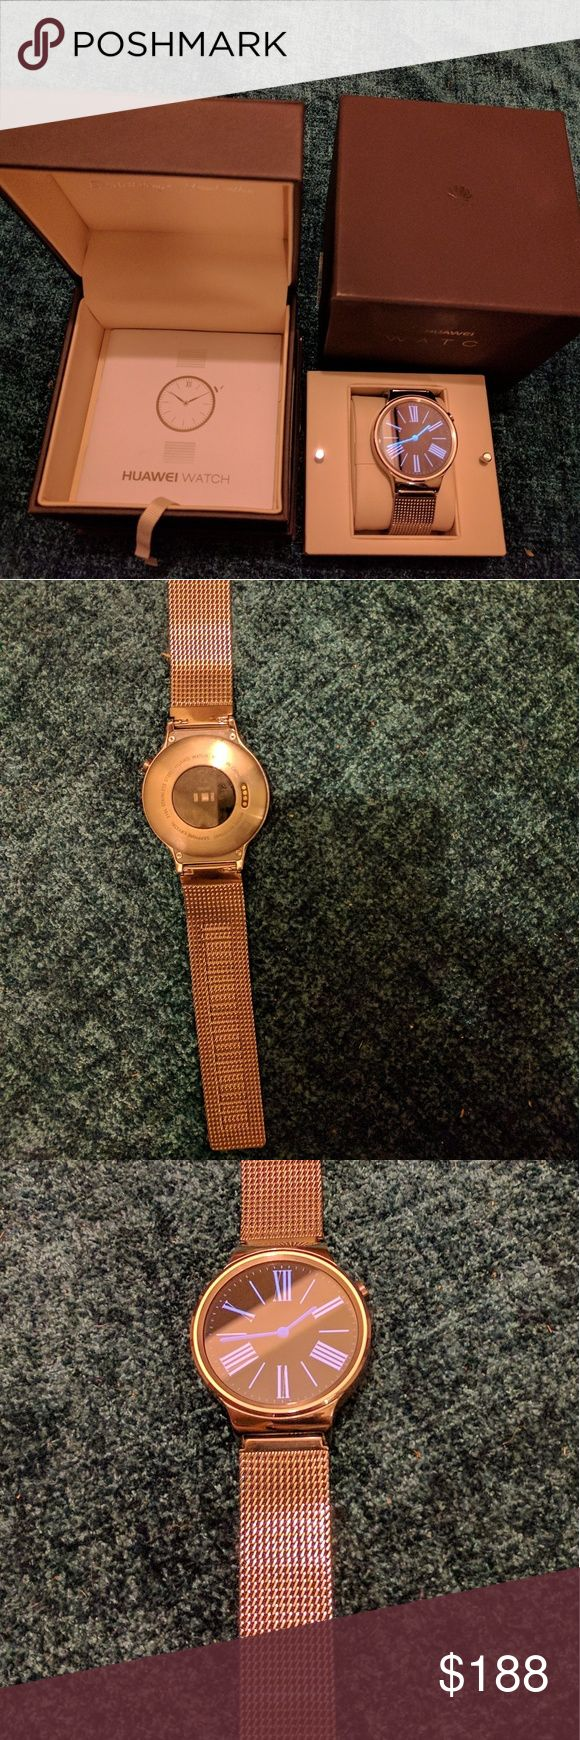 ELEGANT Huawei Smartwatch Stainless Milanese MINT condition. No scratches or scuffs to face, bezel or band.  Only worn a few times as I purchased the rose gold version. Android Wear 2.0 upgrade, 4000+ apps, all notifications, speaker, bluetooth, take calls. Seamlessly sync w/ Android or Apple phones. Regarded as the most elegant classic design of smartwatches by all major tech reviewers. Original box included, does have a small nick on one side. Charger, USB & manual included. Battery…